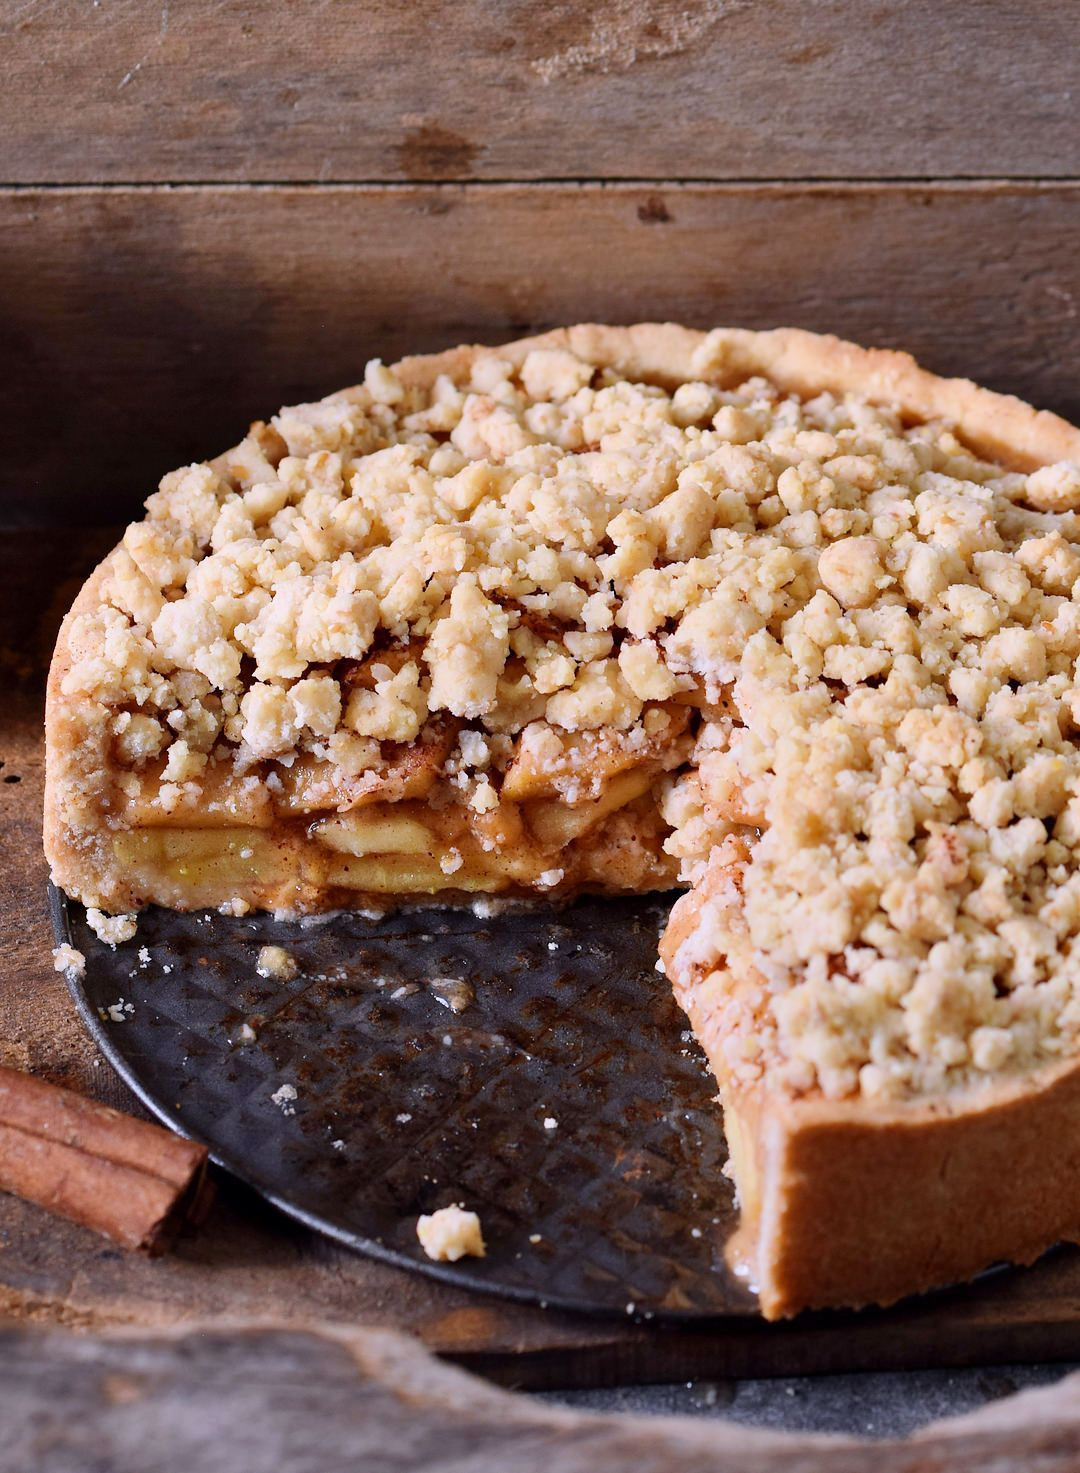 vegan apple pie with streusel is the perfect fall dessert. The recipe is vegan, gluten-free, can be made nut-free, grain-free, and refined sugar-free! Also great for Thanksgiving!